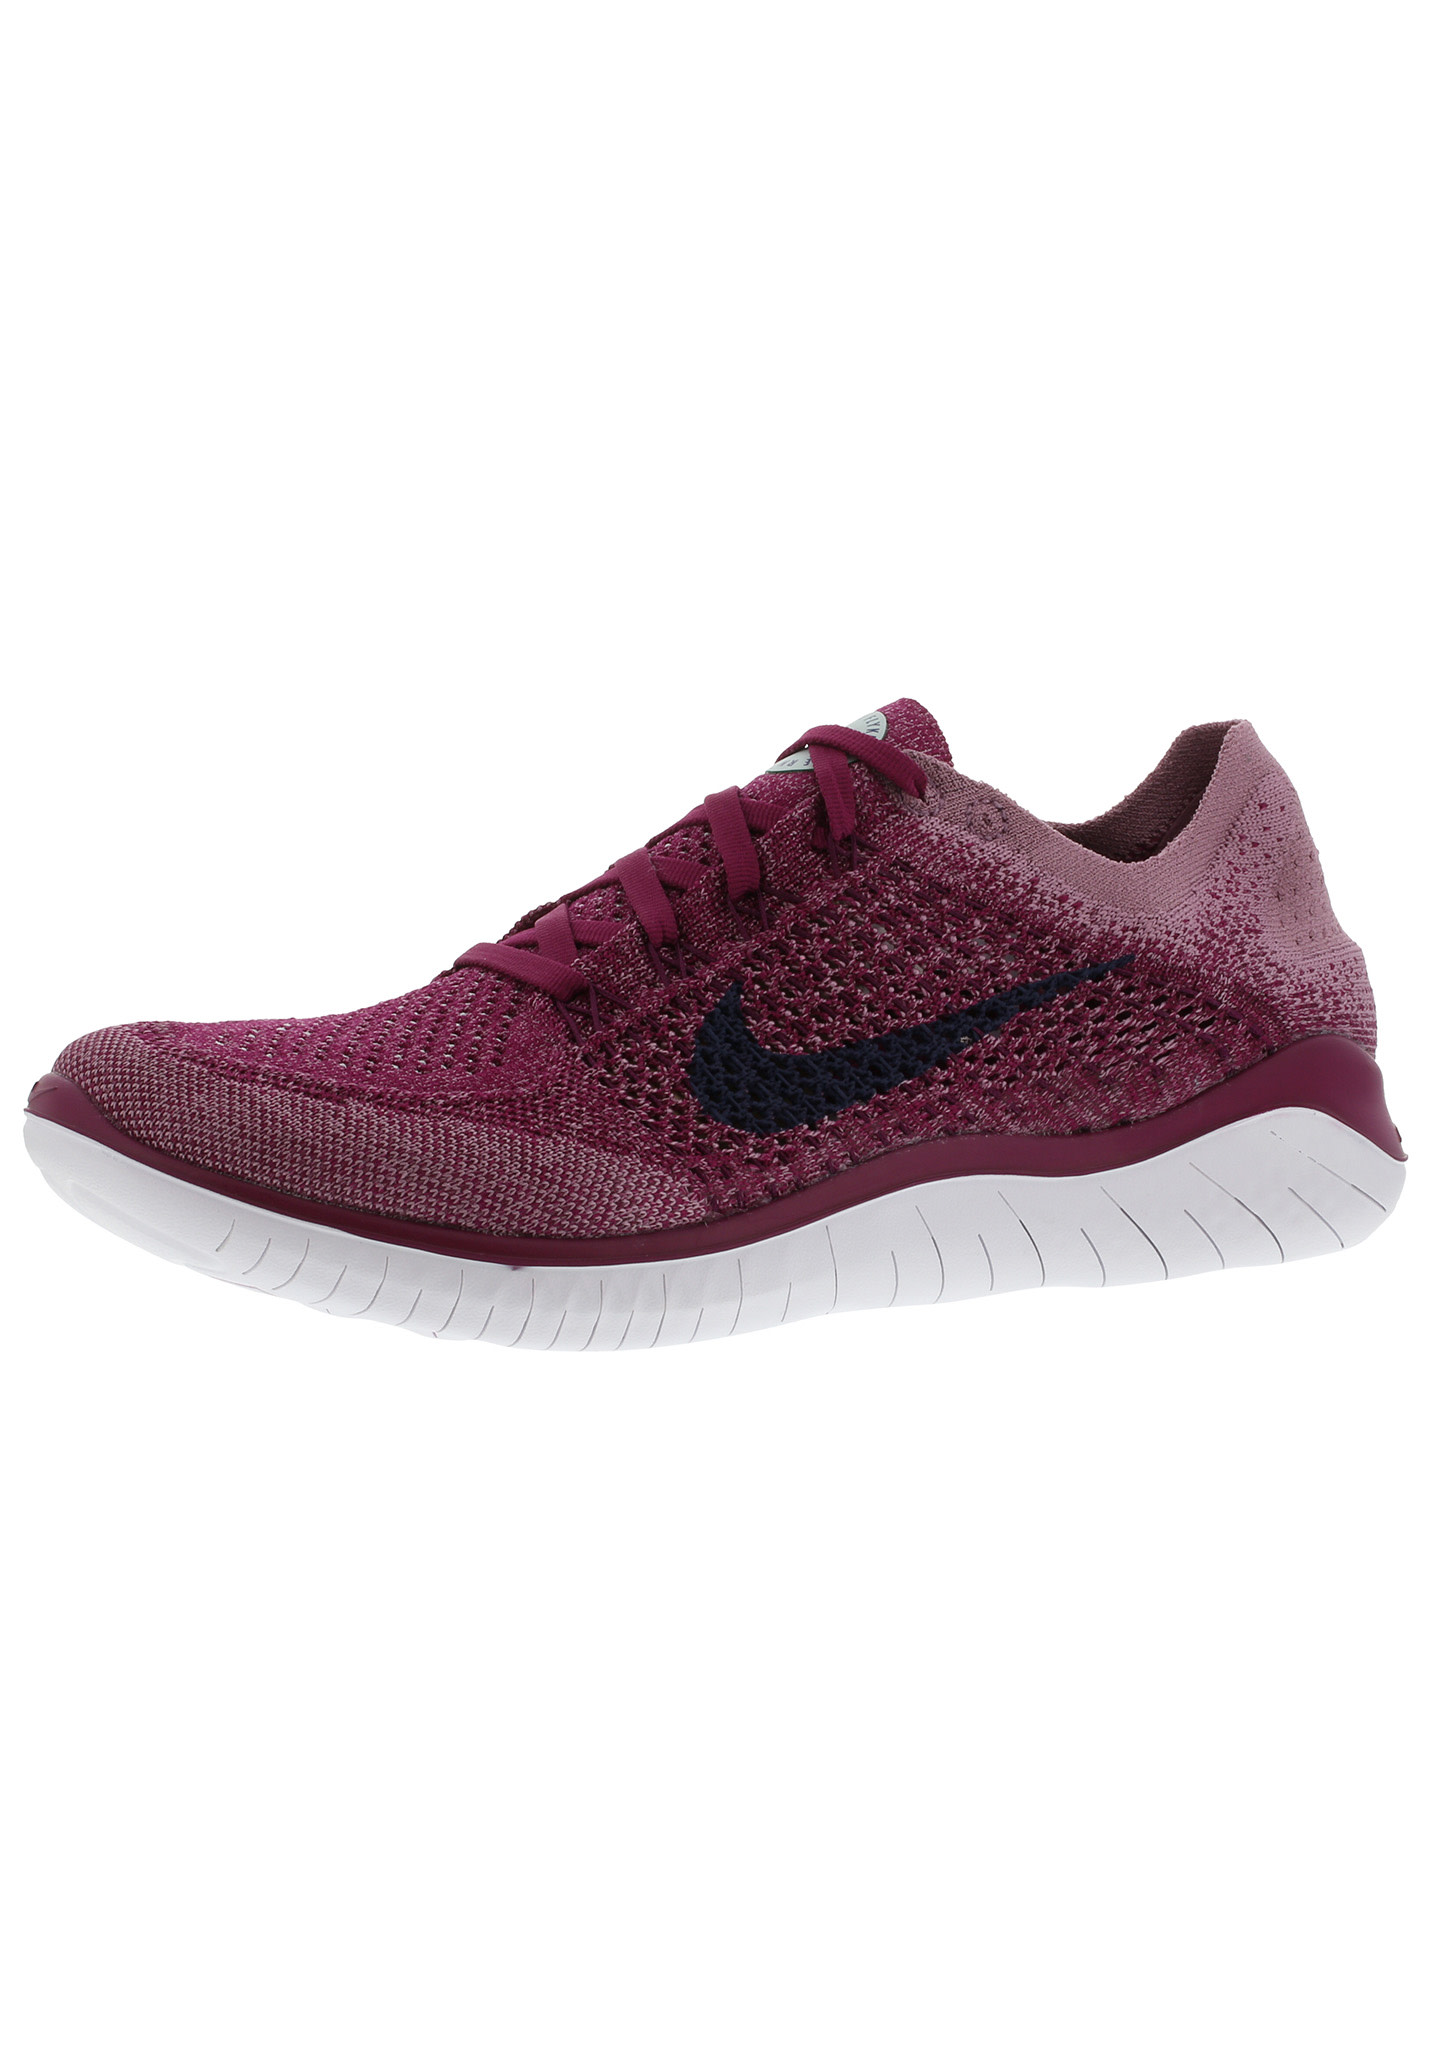 finest selection a42a5 594b7 Nike Free RN Flyknit 2018 - Running shoes for Women - Pink   21RUN